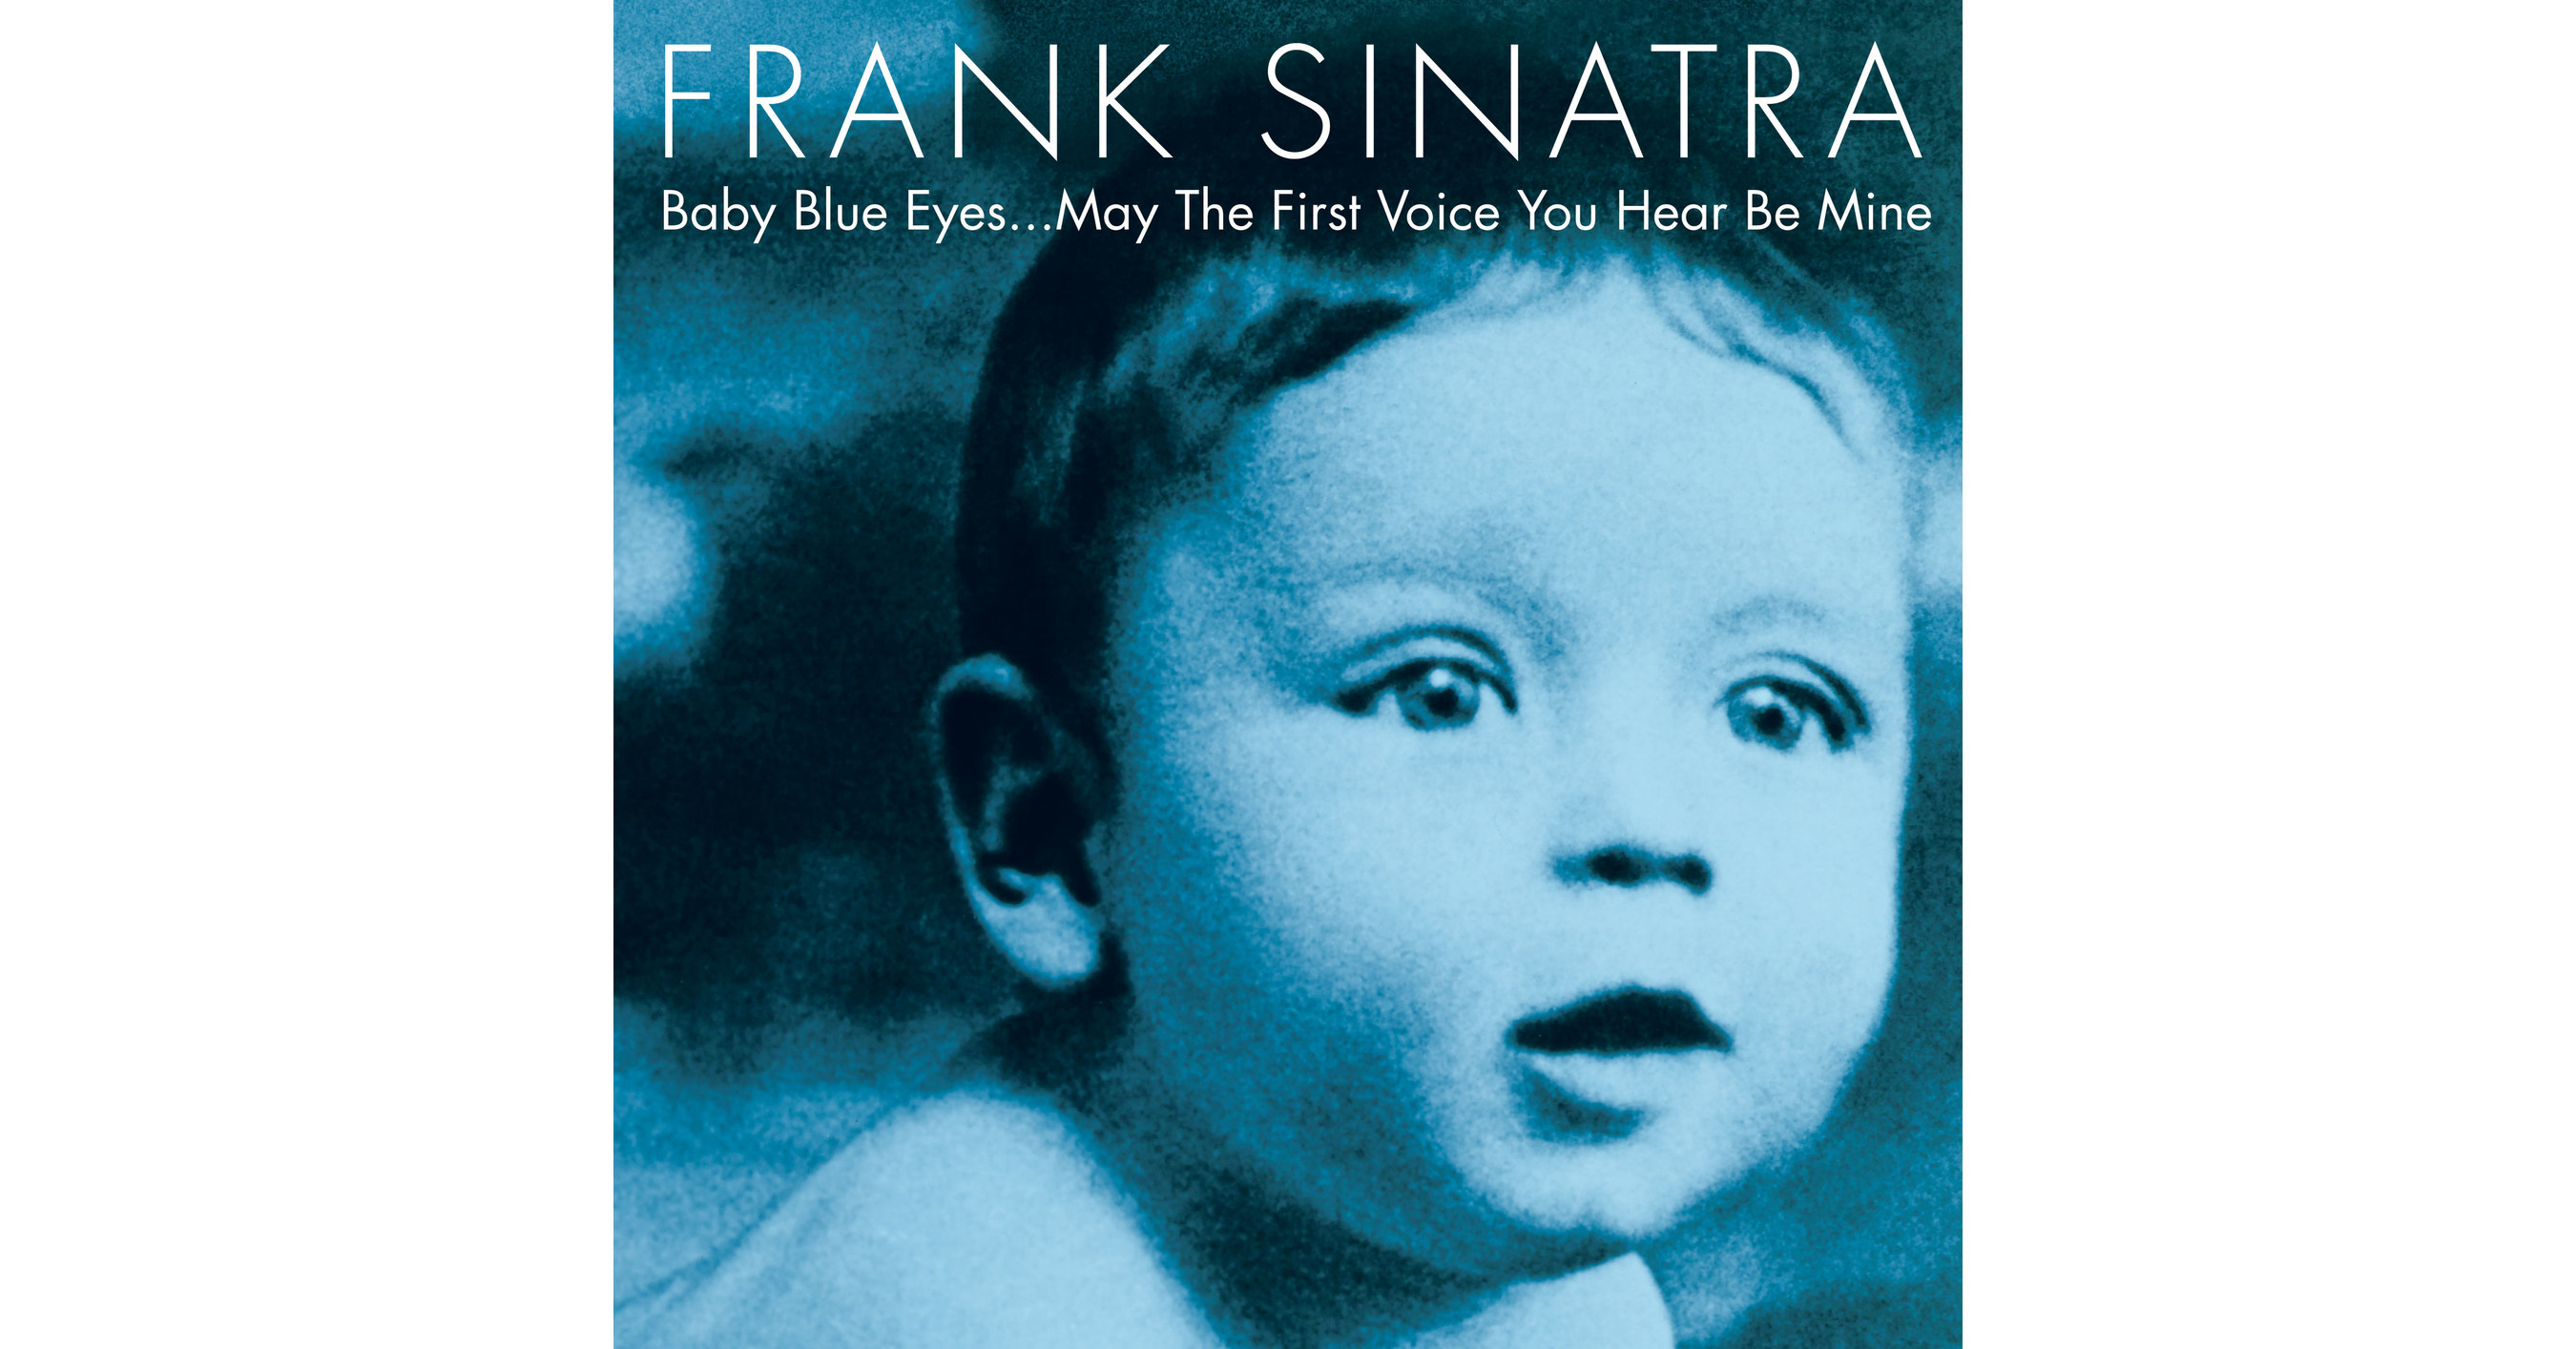 frank sinatra  u0026 39 baby blue eyes u2026 may the first voice you